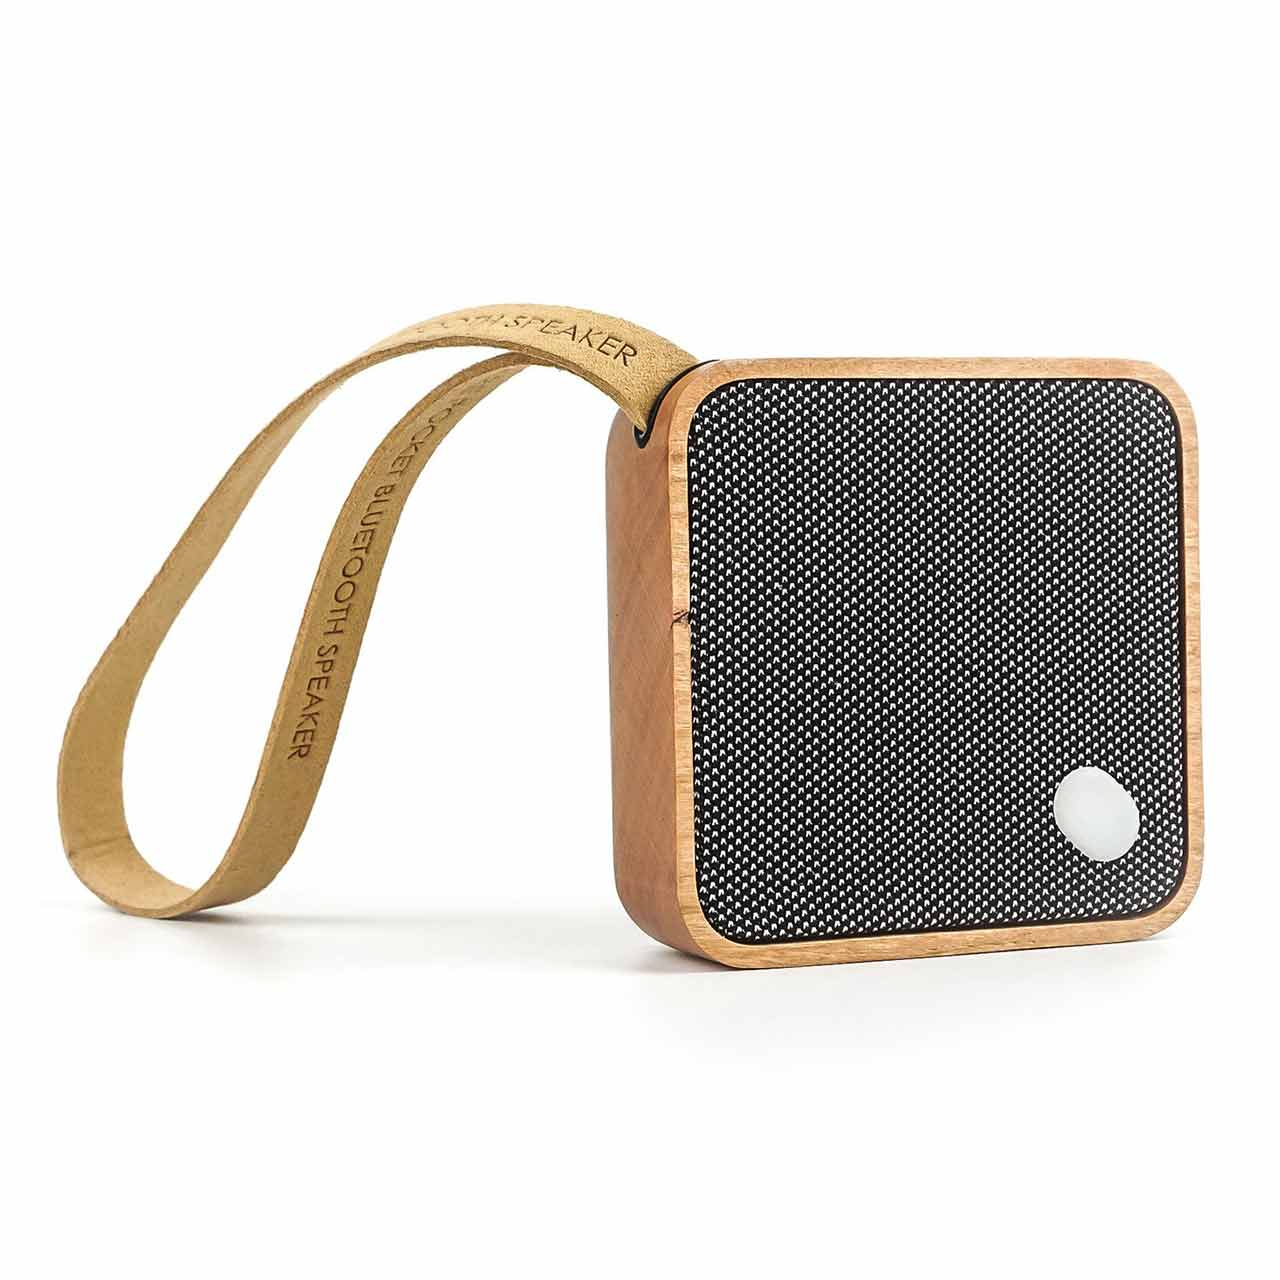 GINGKO Mi Square Pocket Bluetooth Speaker Cherry Wood | the design gift shop